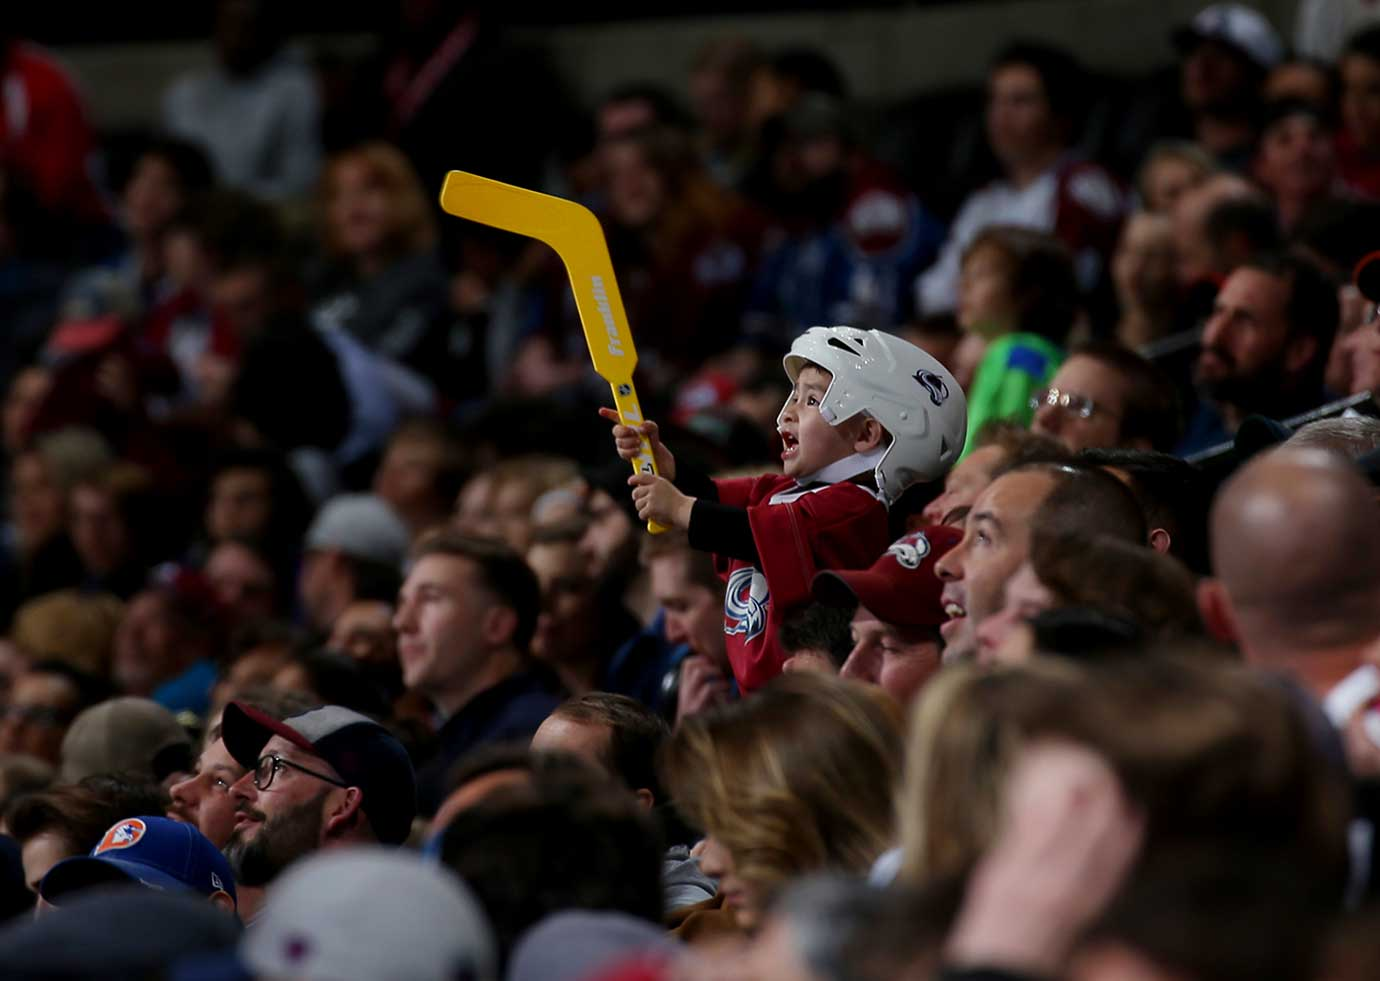 A young fan of the Colorado Avalanche cheers from the stands during the game against Florida.